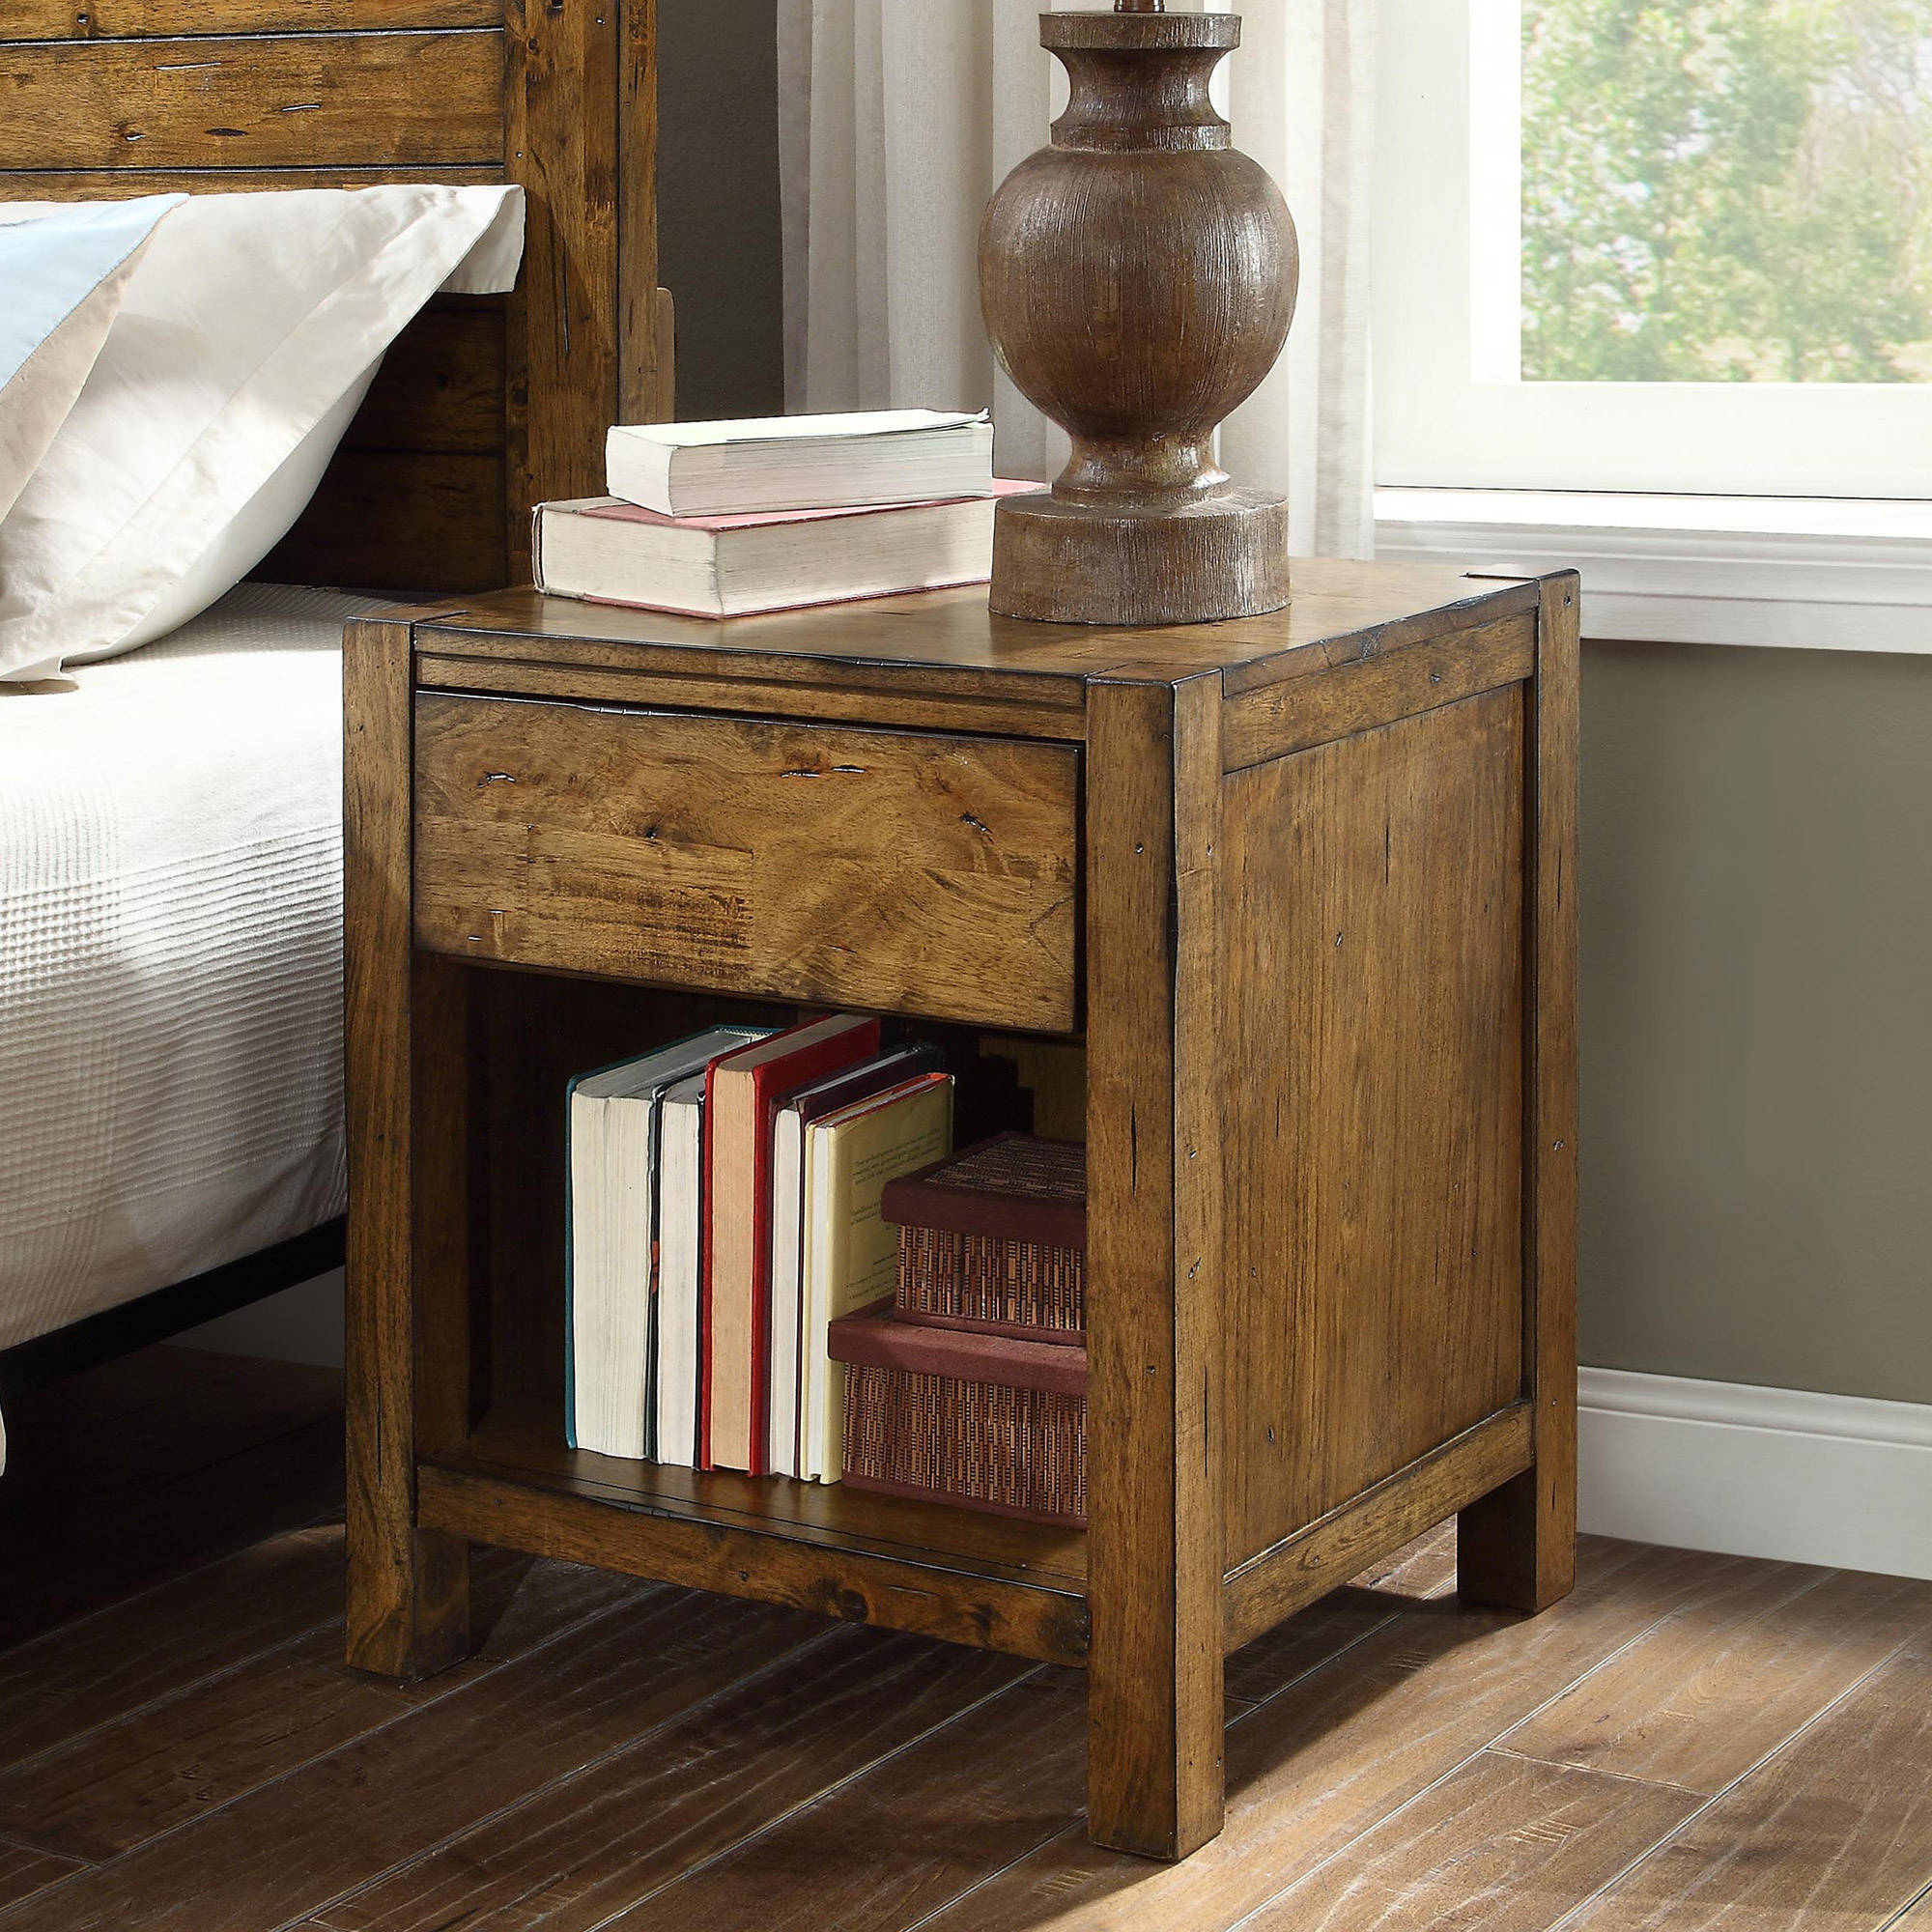 Details About Nightstand Solid Wood Rustic Barn Wood Finish Night Stand Bedroom Furniture New